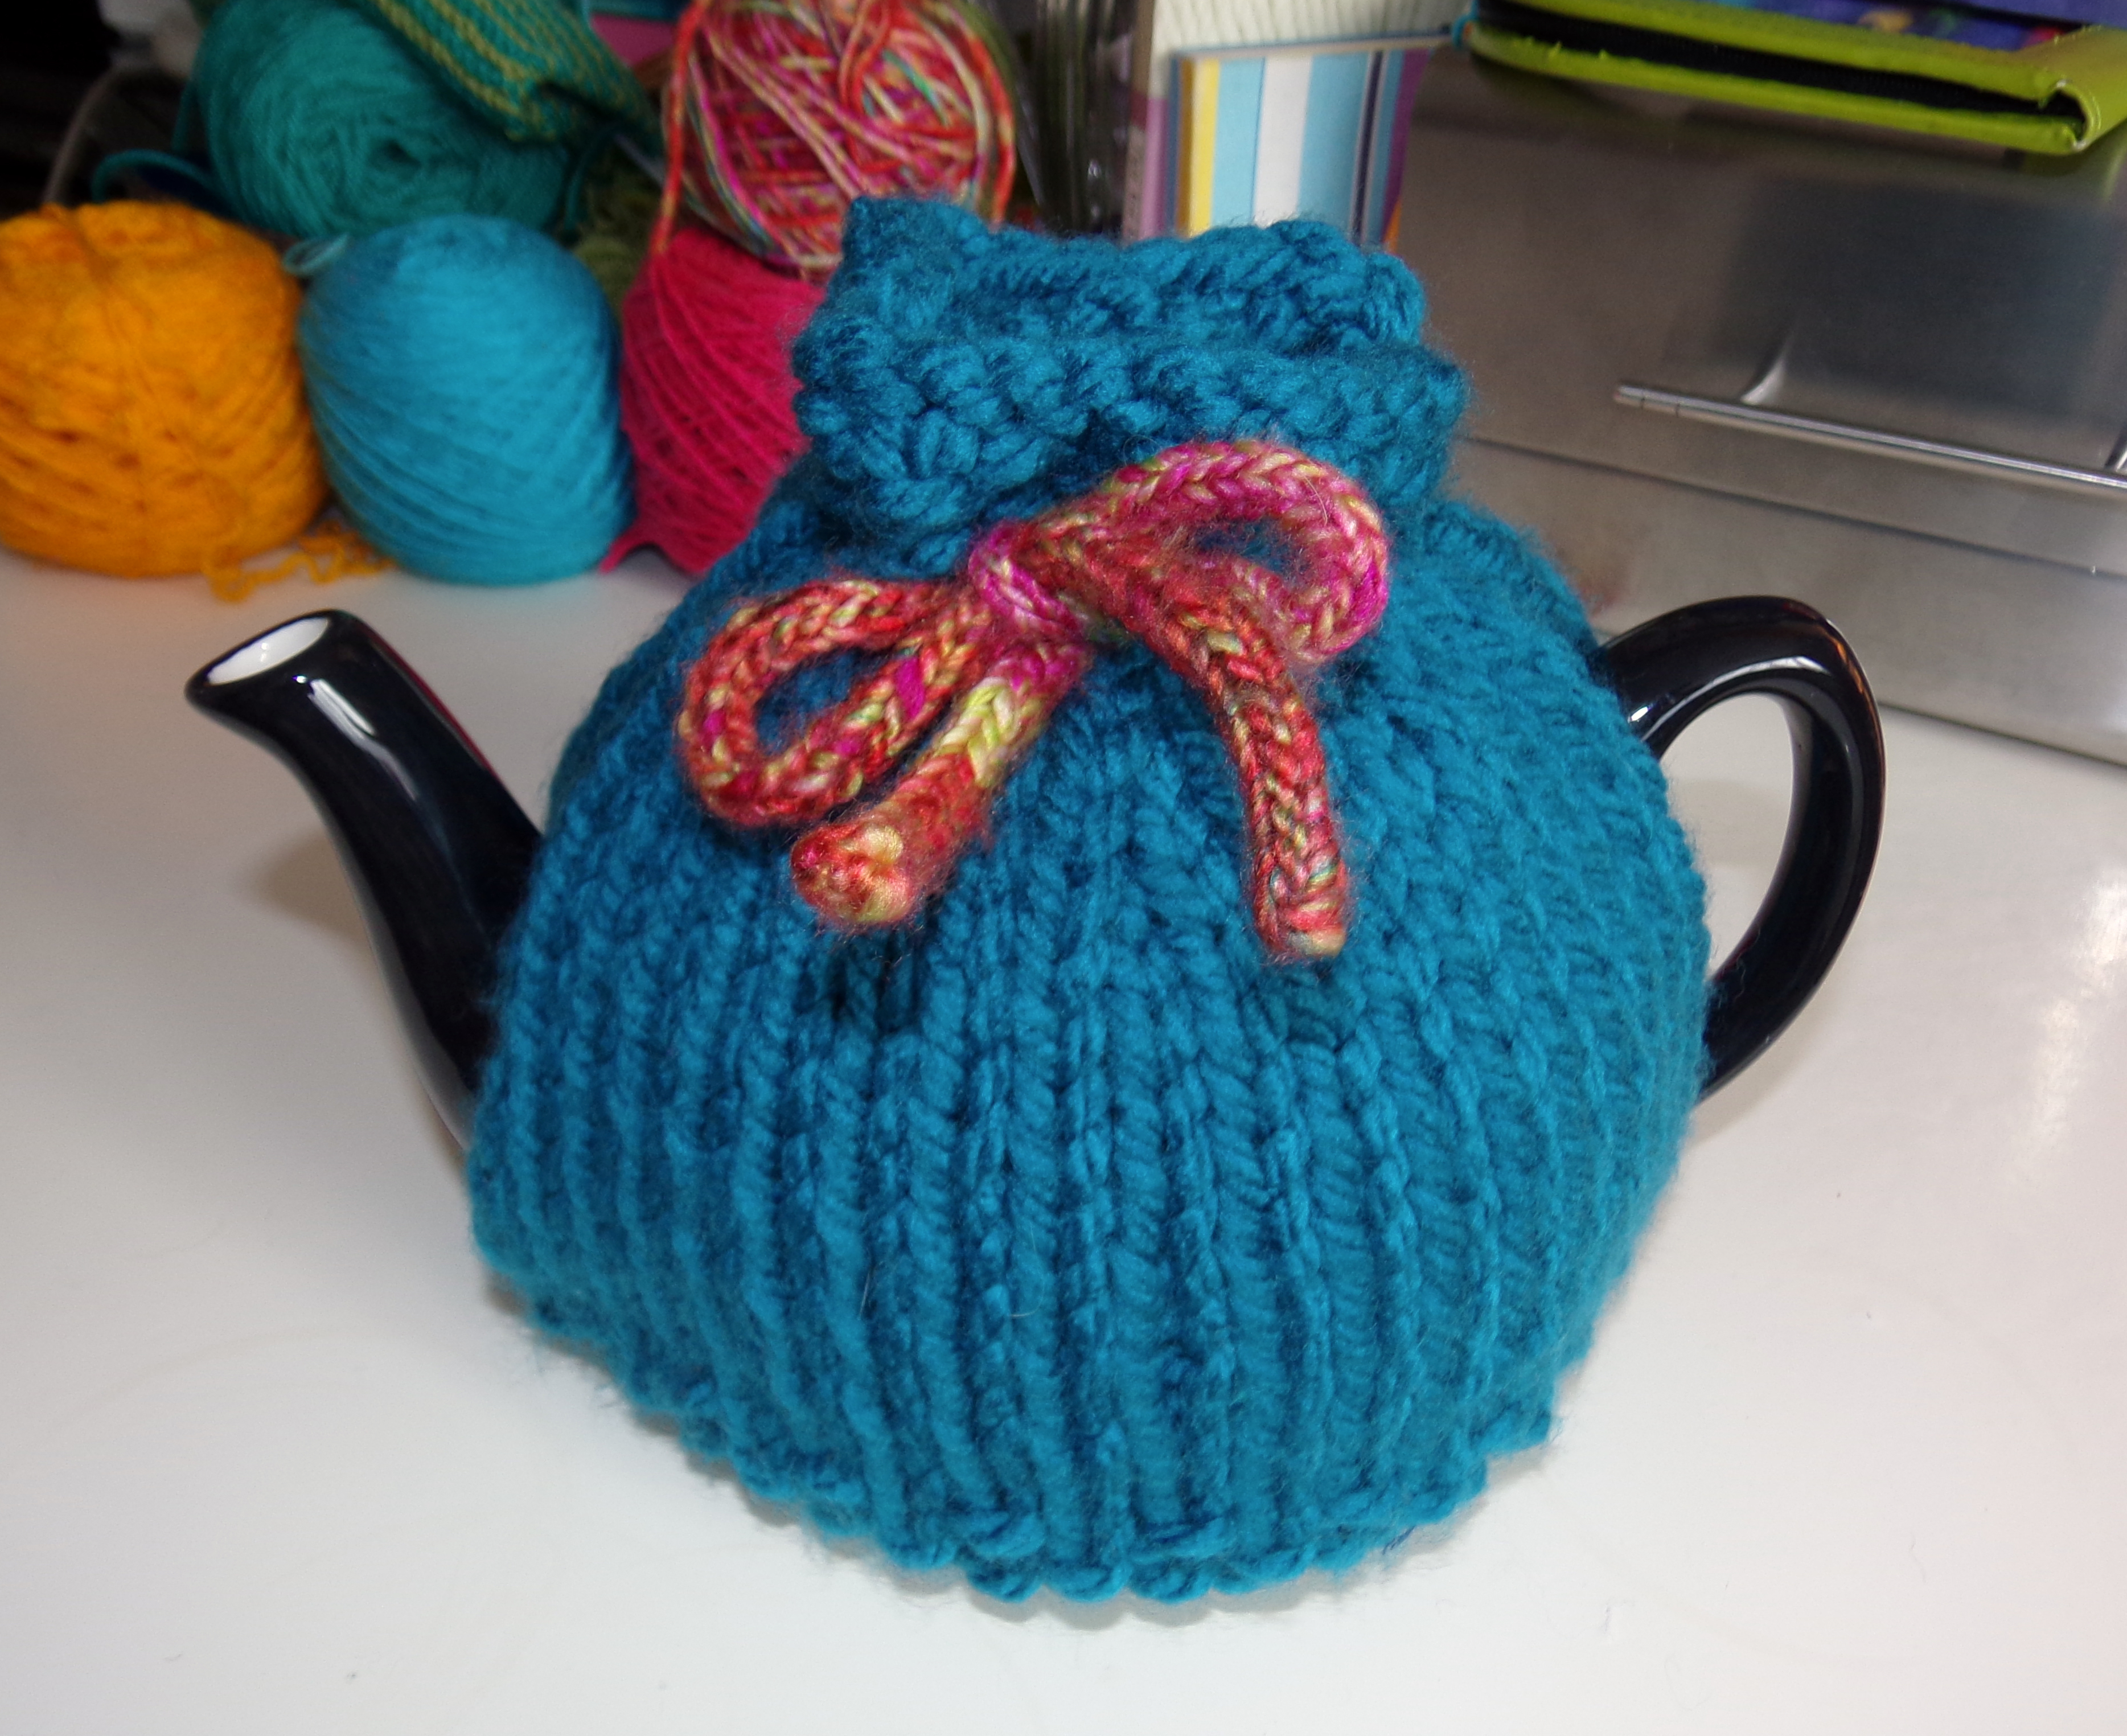 Patterns For Knitted Tea Cosies Three Free Tea Cosy Patterns Reviewed Or Why Tea Pots Are Better